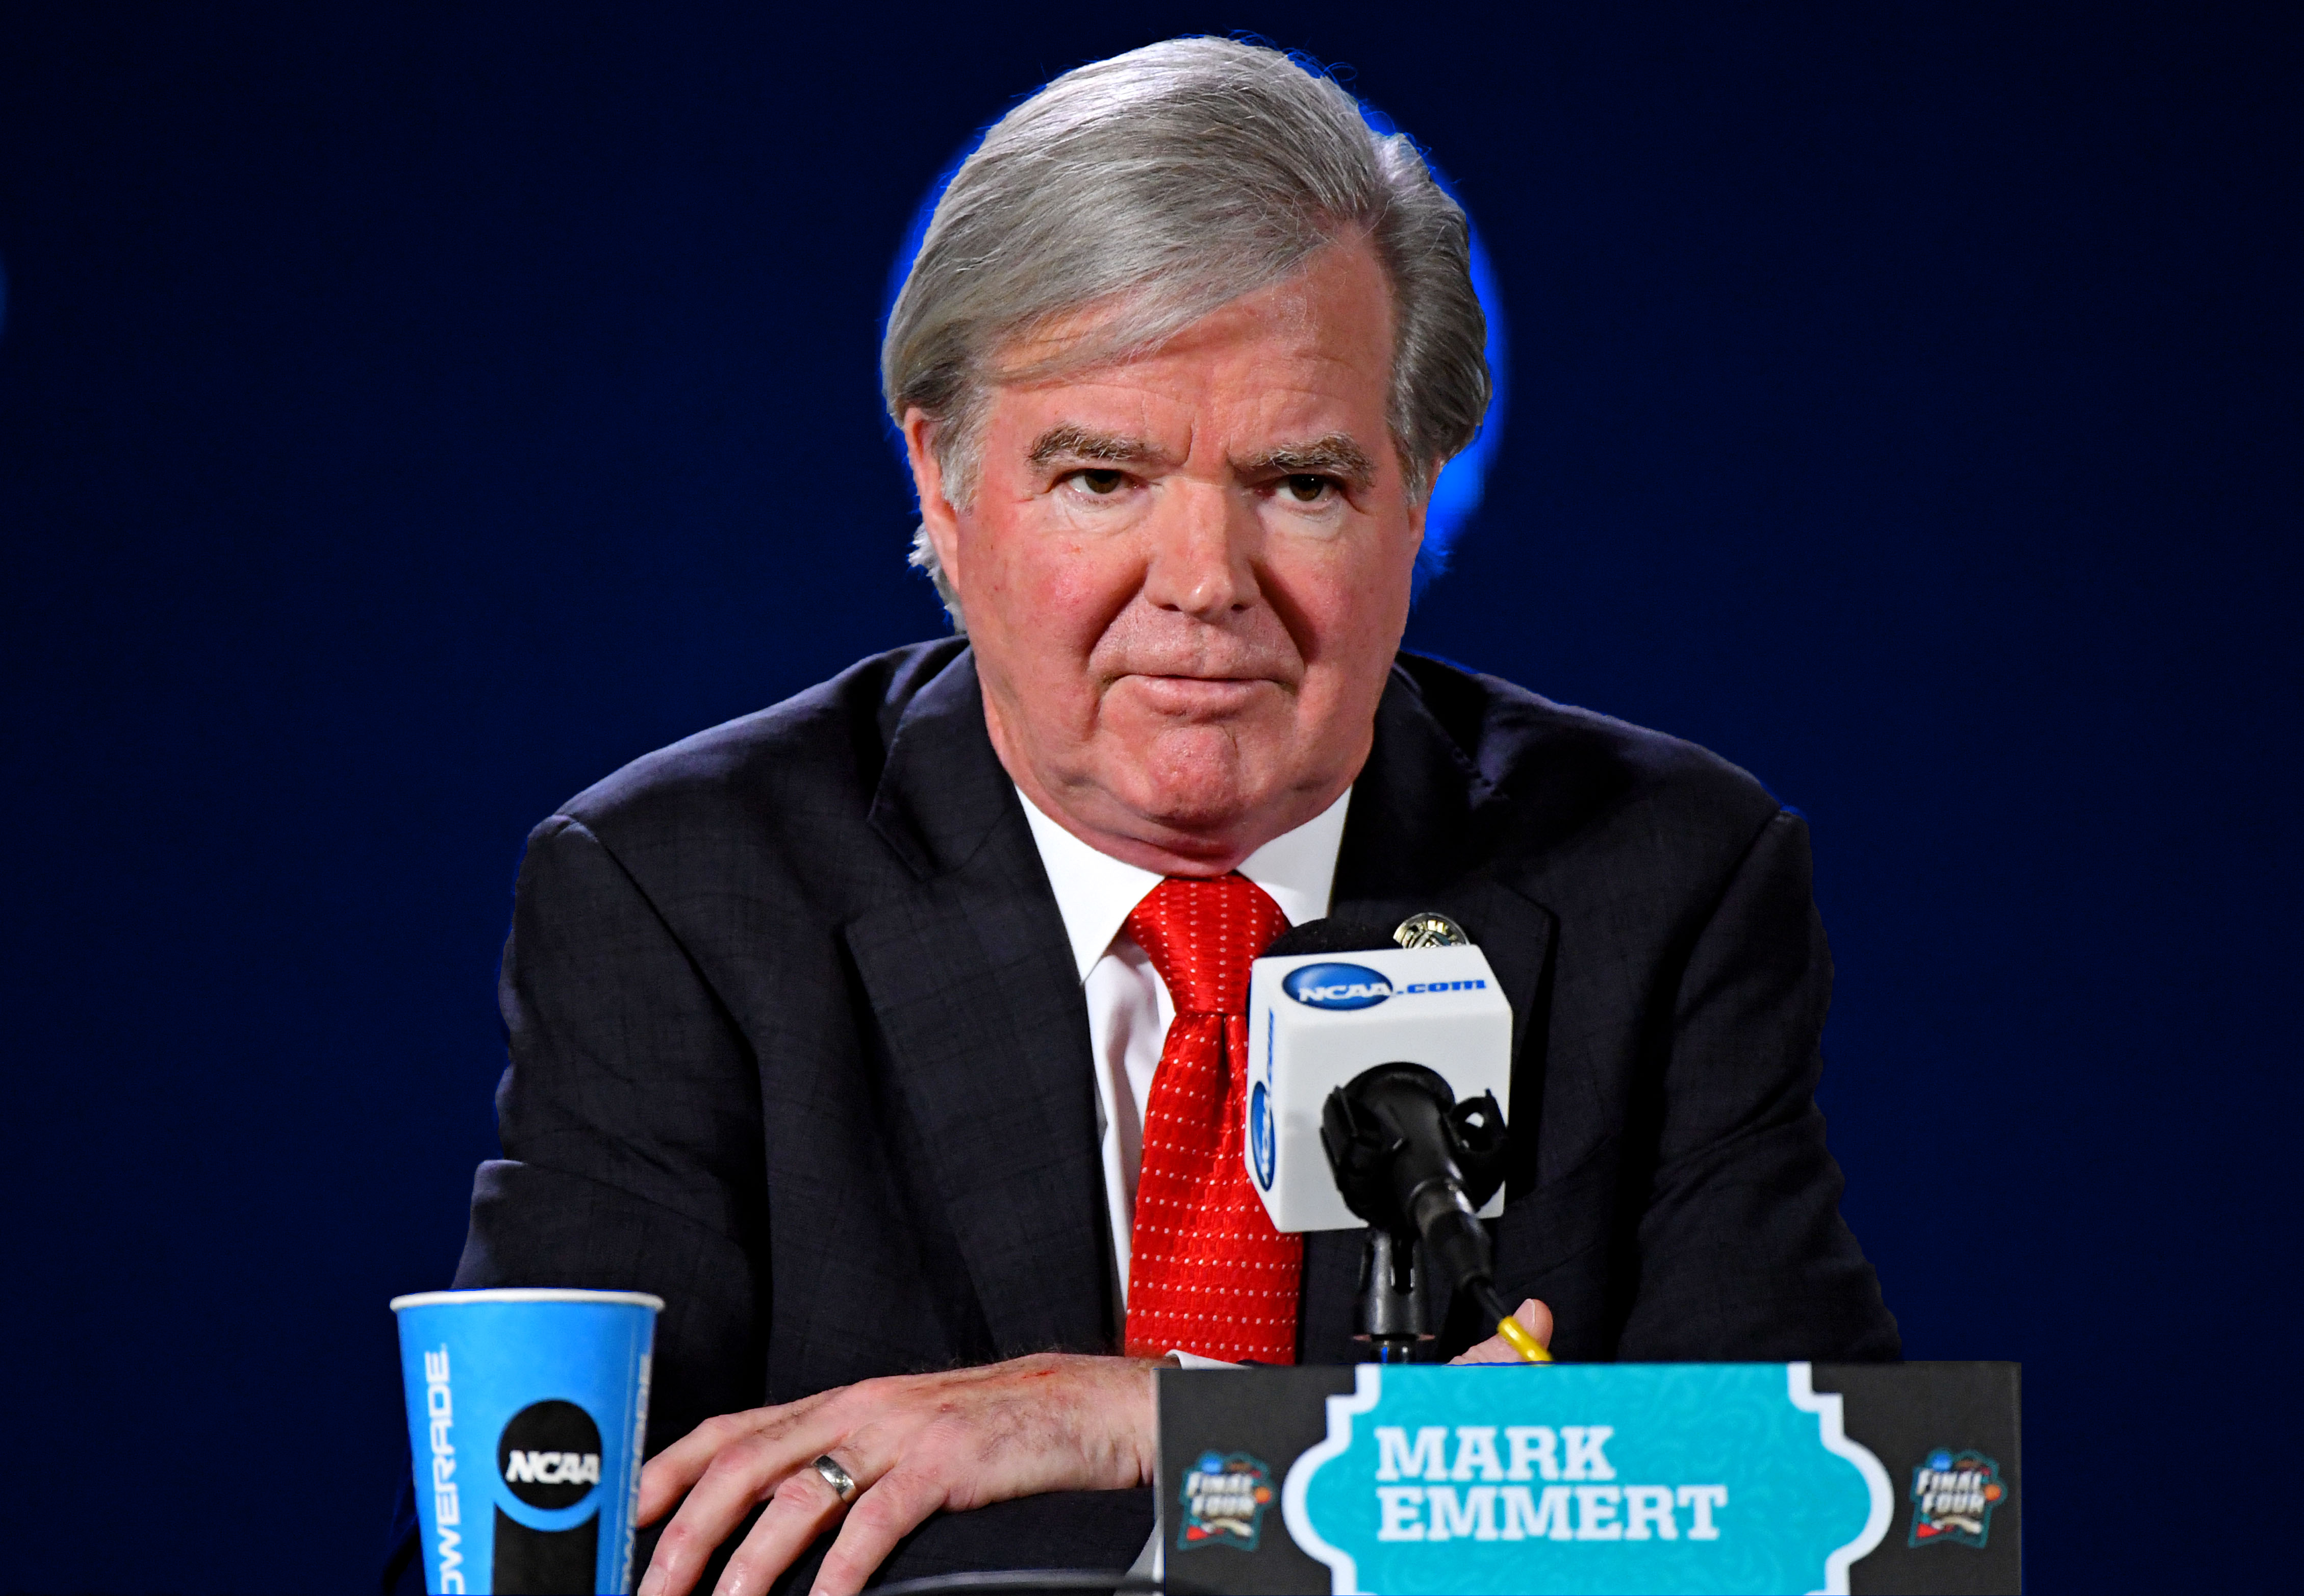 NCAA president Mark Emmert holds a press conference.